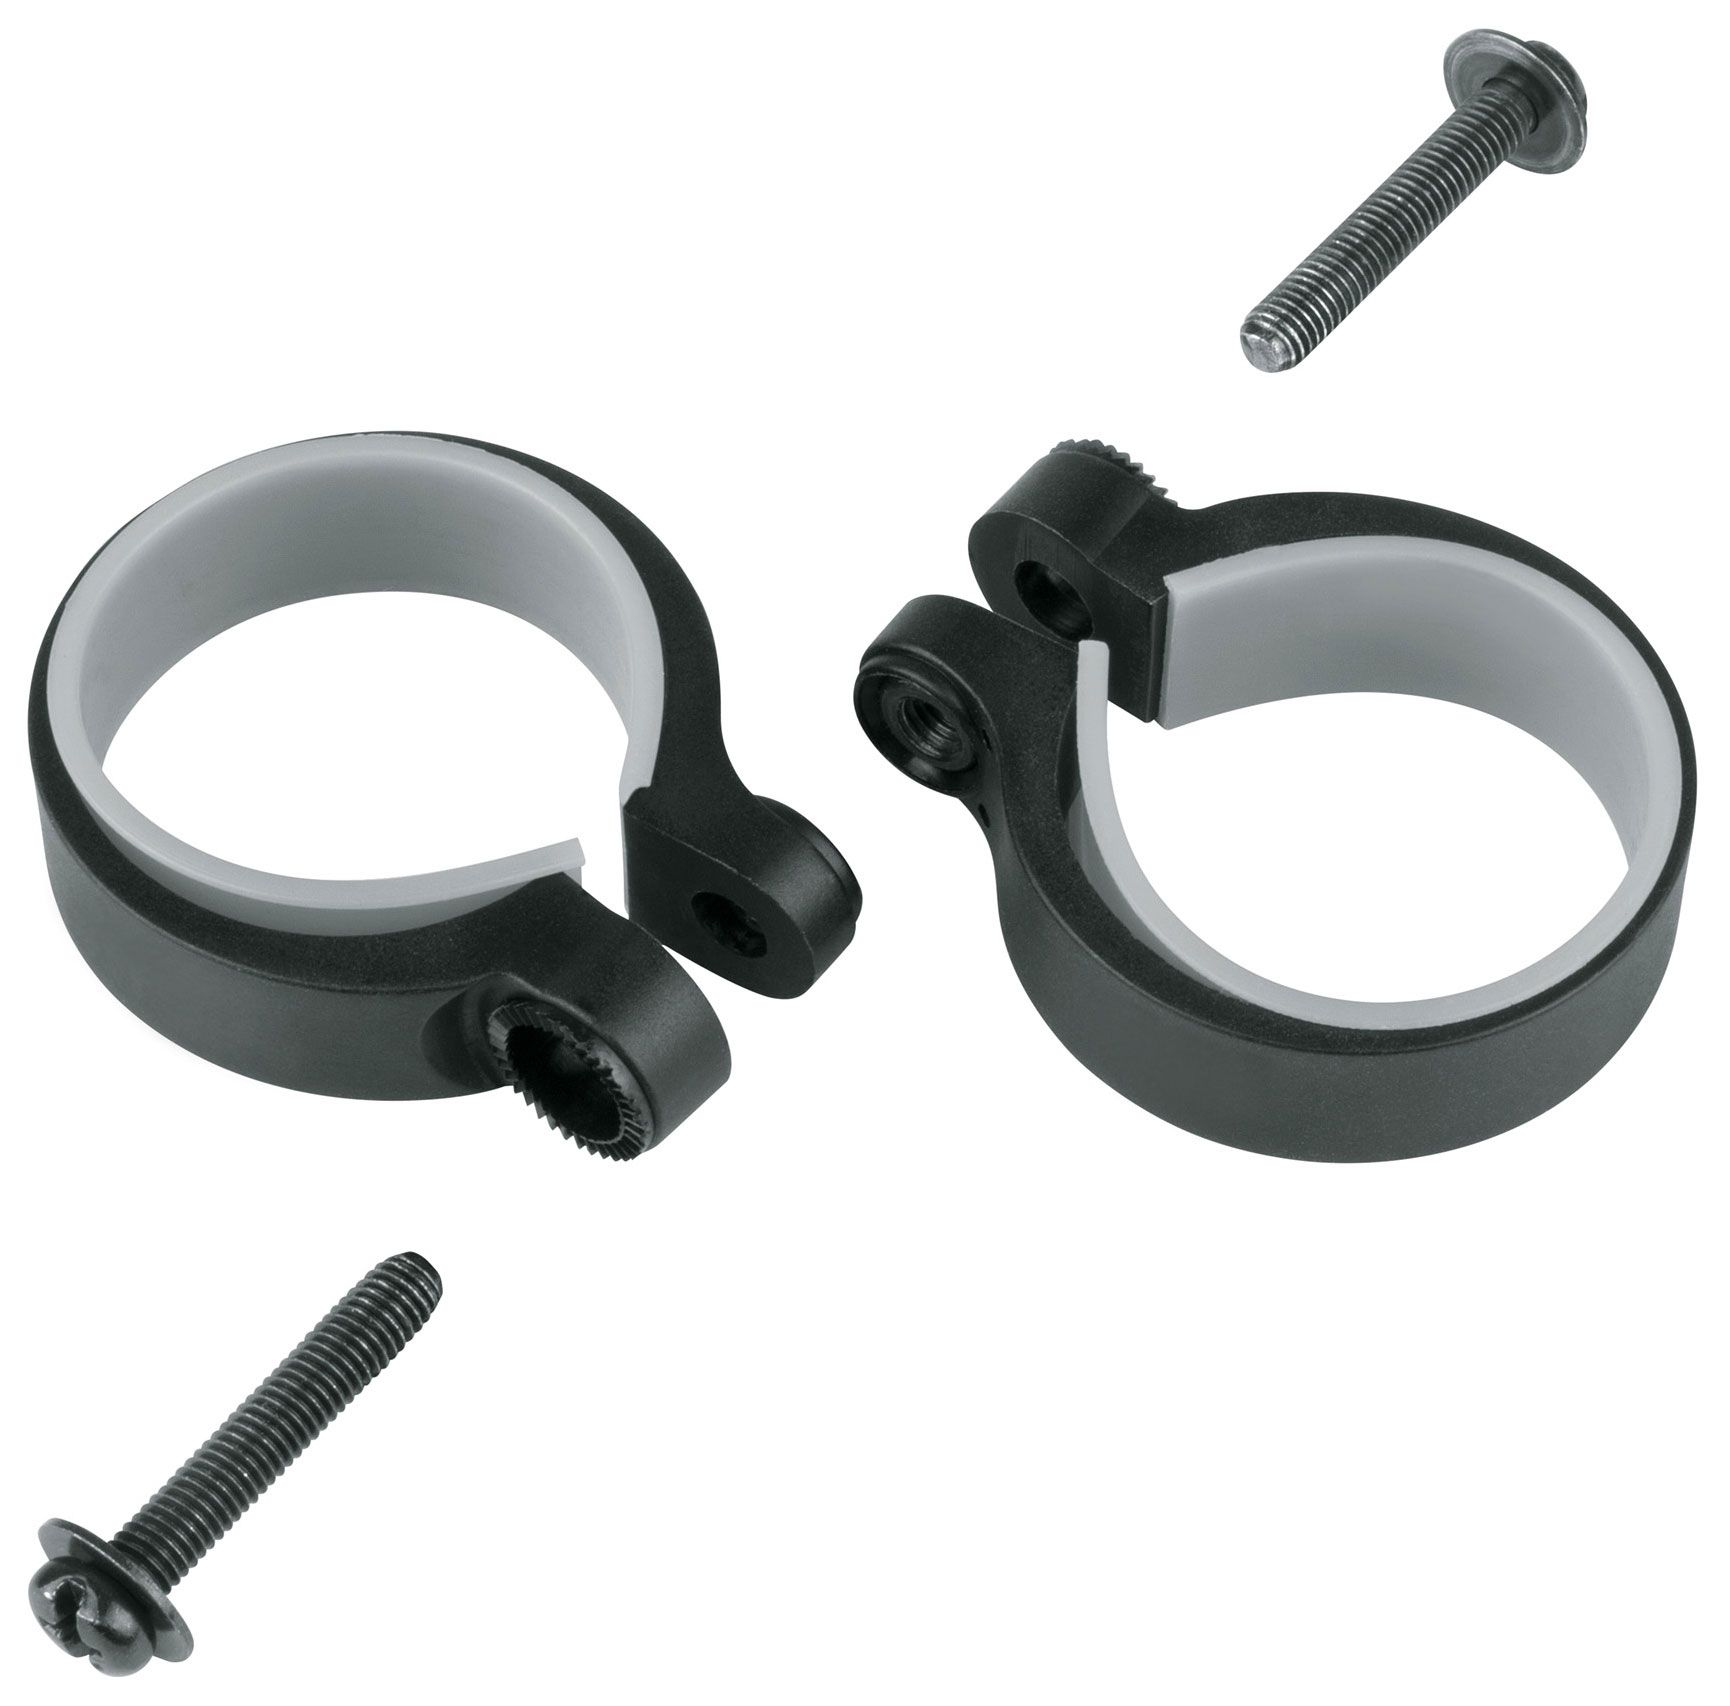 Запчасть SKS Stay Mounting Clamps 2 Pcs. 34,5 - 37,5Mm (SKS-11484) artina sks artina sks 10053